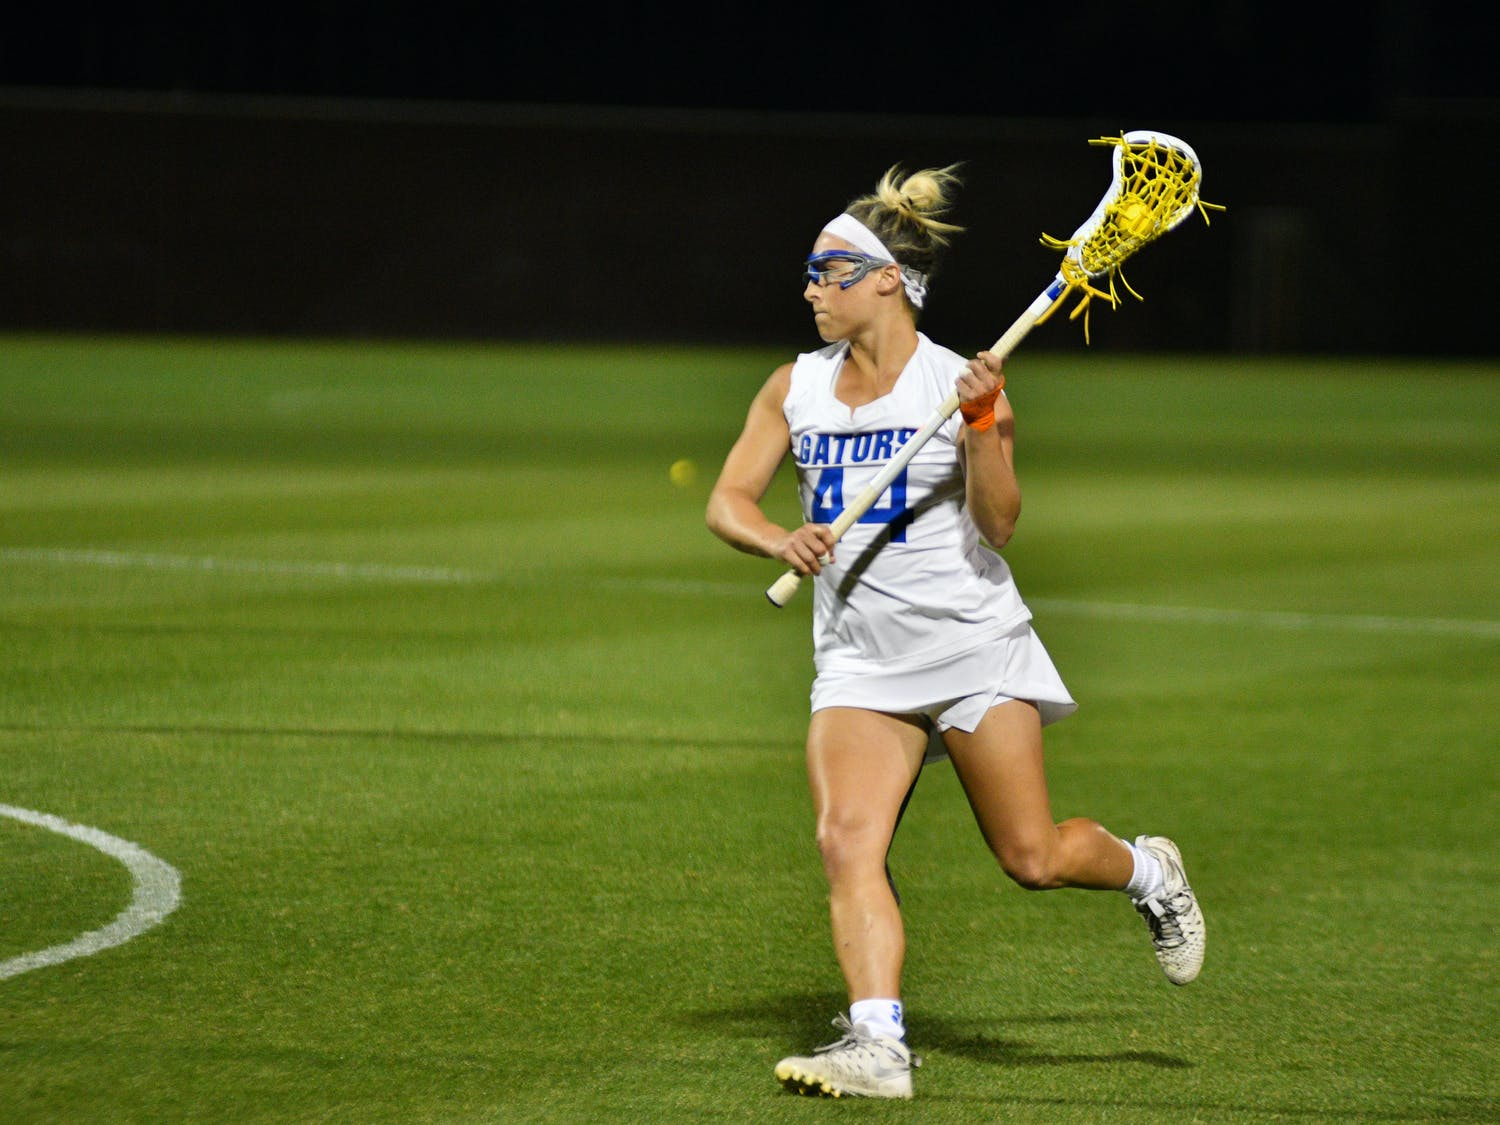 MidfielderSydney Pirreca tied the program record with 11 points as UF advanced to the AAC Championship.